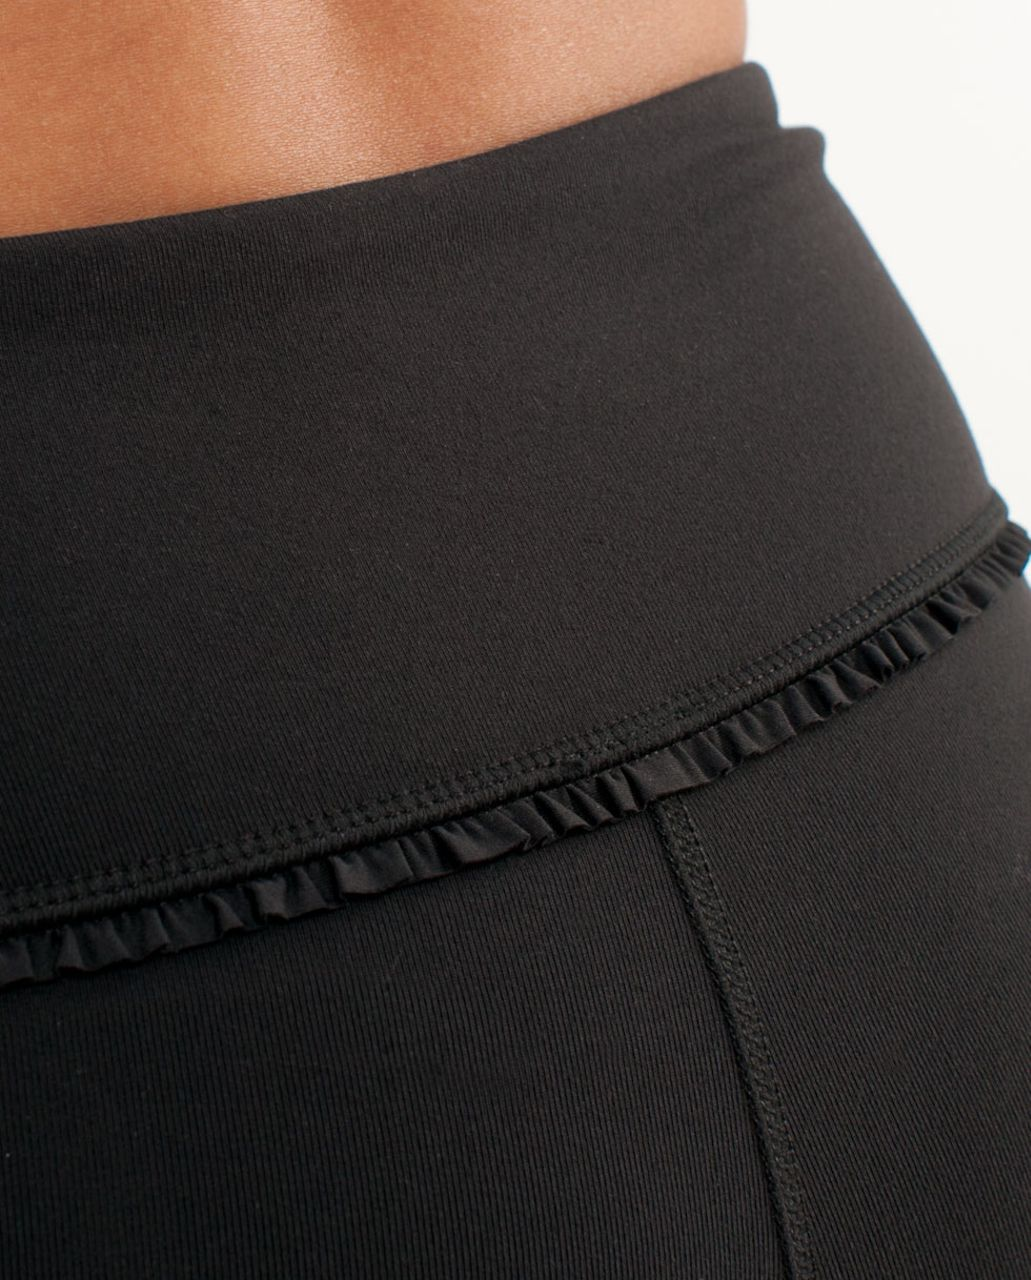 Lululemon Boogie Short *Ruffle - Black